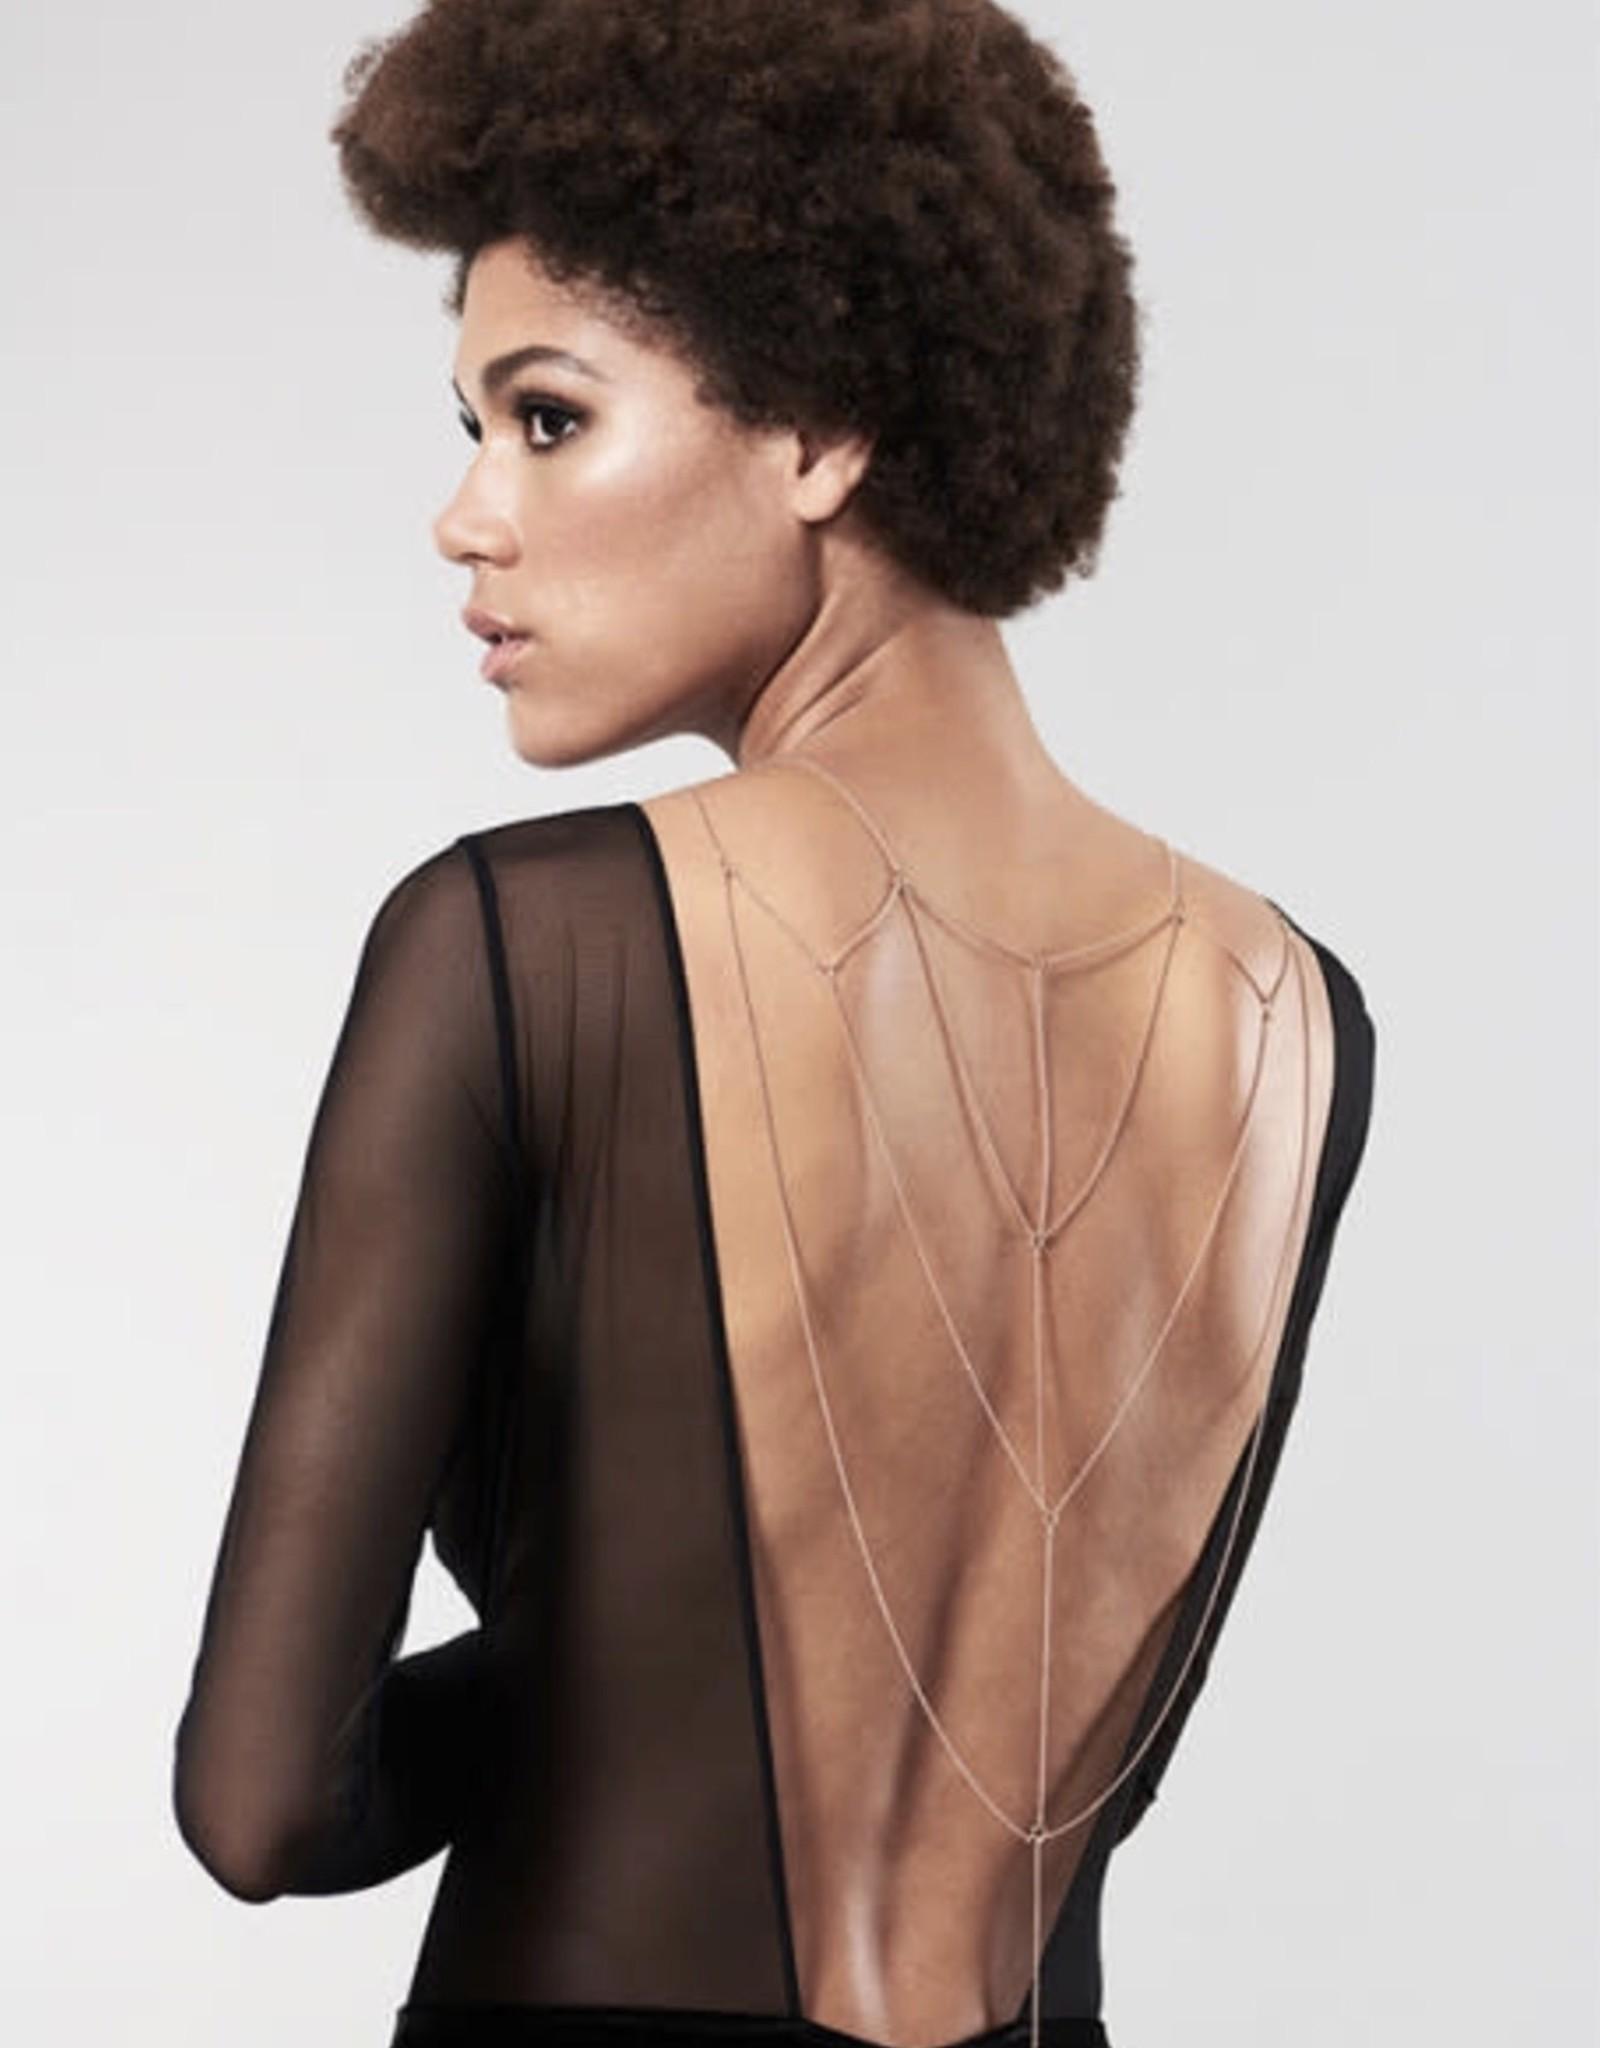 Bijoux Indiscrets Magnifique - Metallic chain Back and Cleavage Jewelry